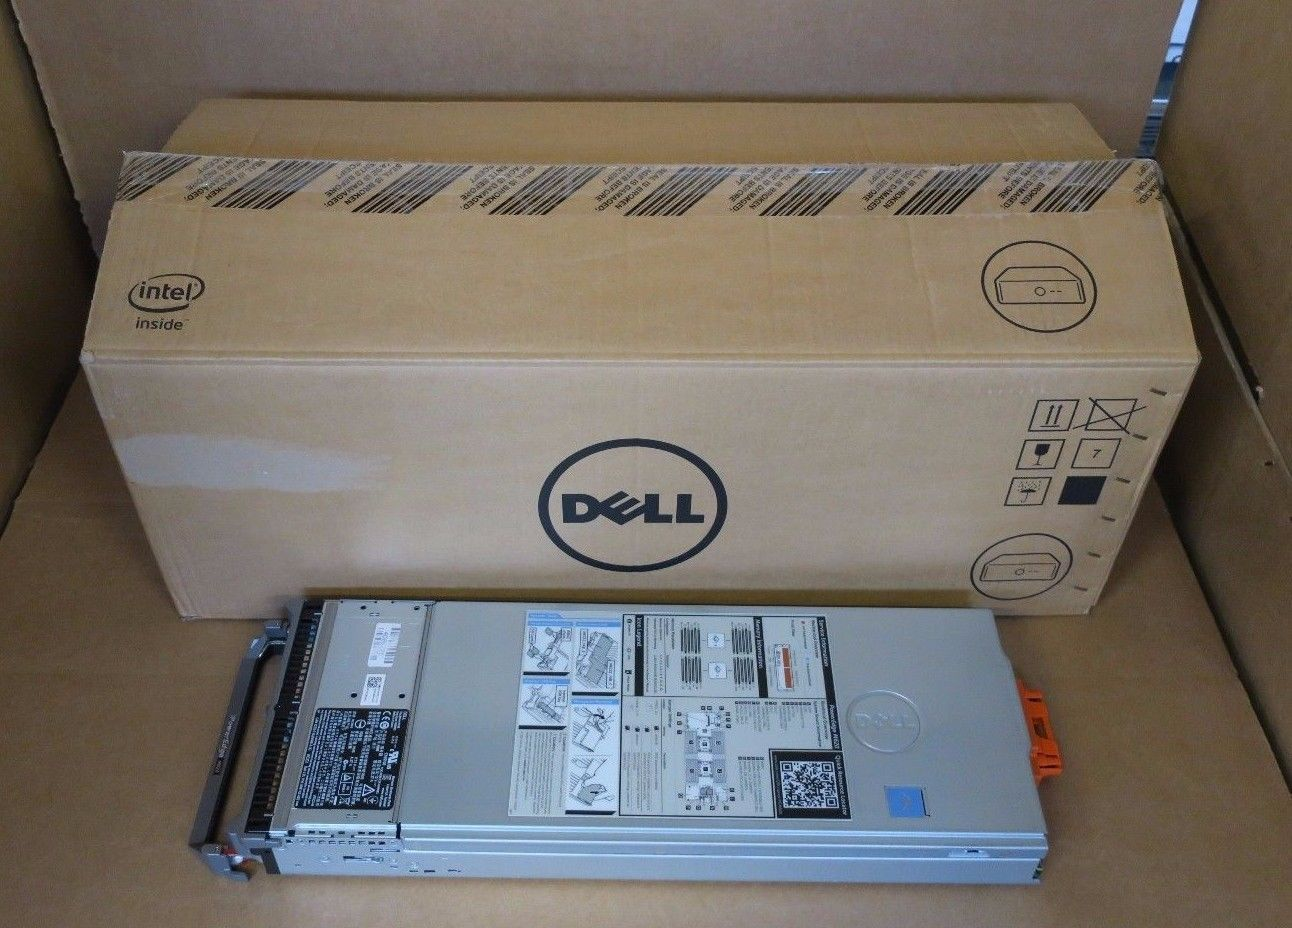 Dell Quote To Order New Dell Poweredge M620 Blade Server Cto Customise To Order